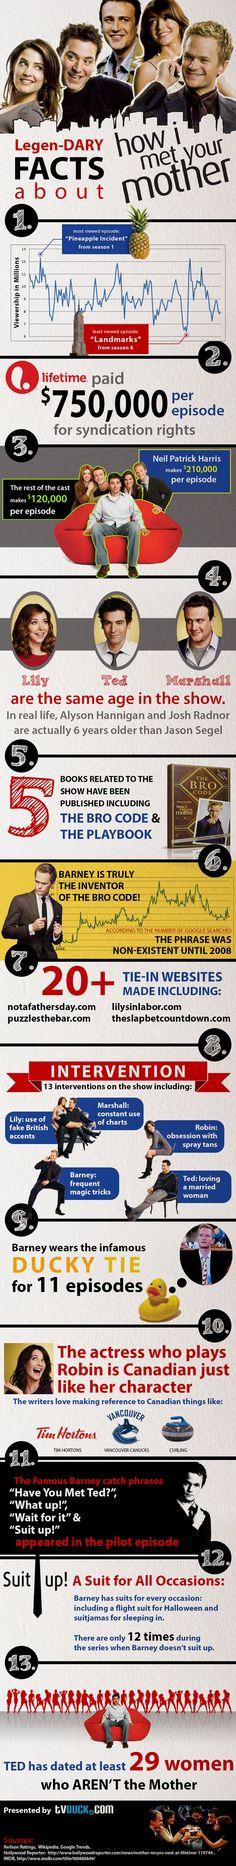 Legendary facts about How I Met Your Mother.